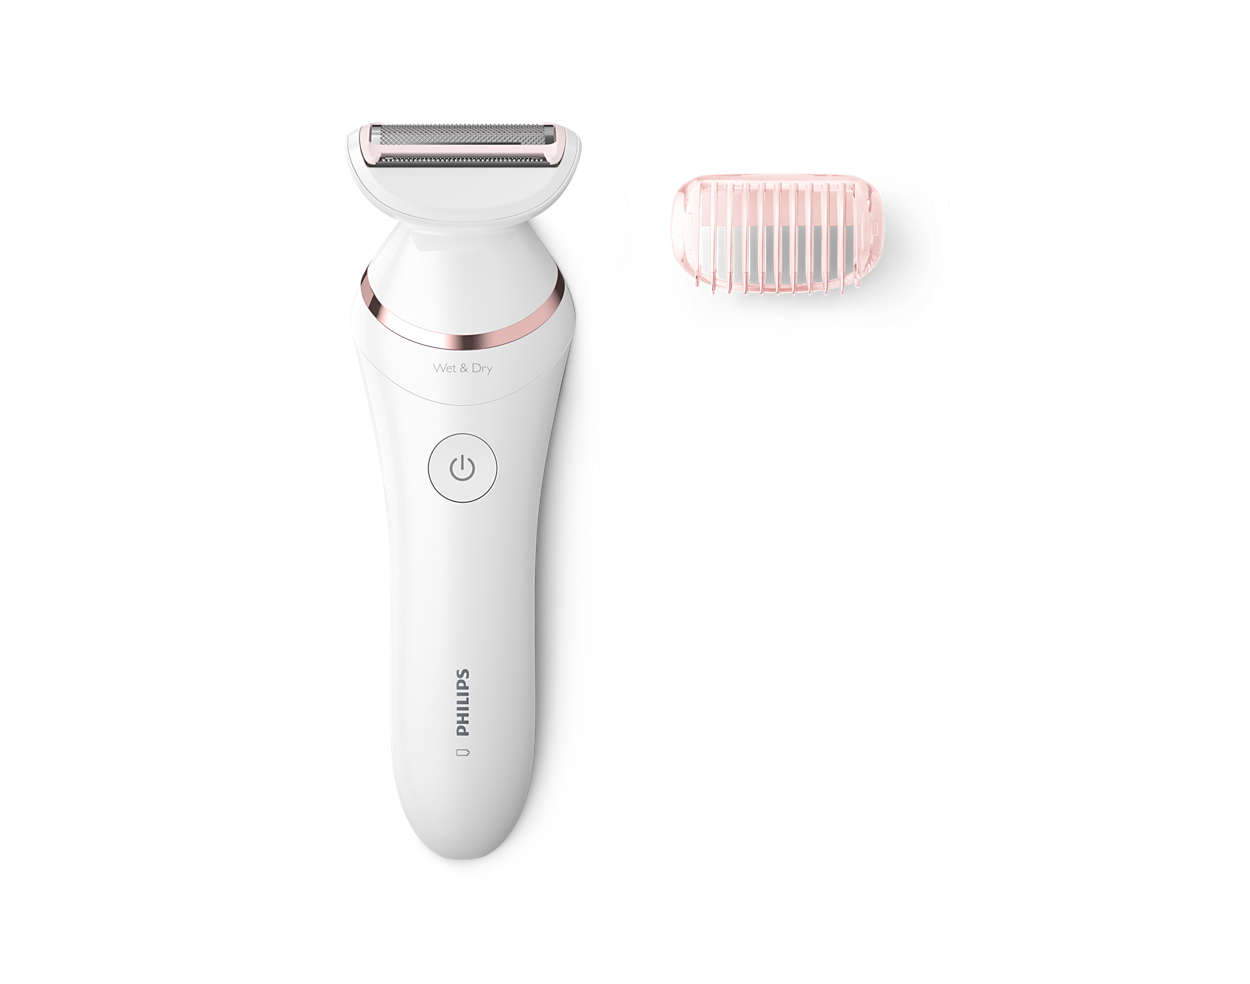 A smooth skin friendly shaver